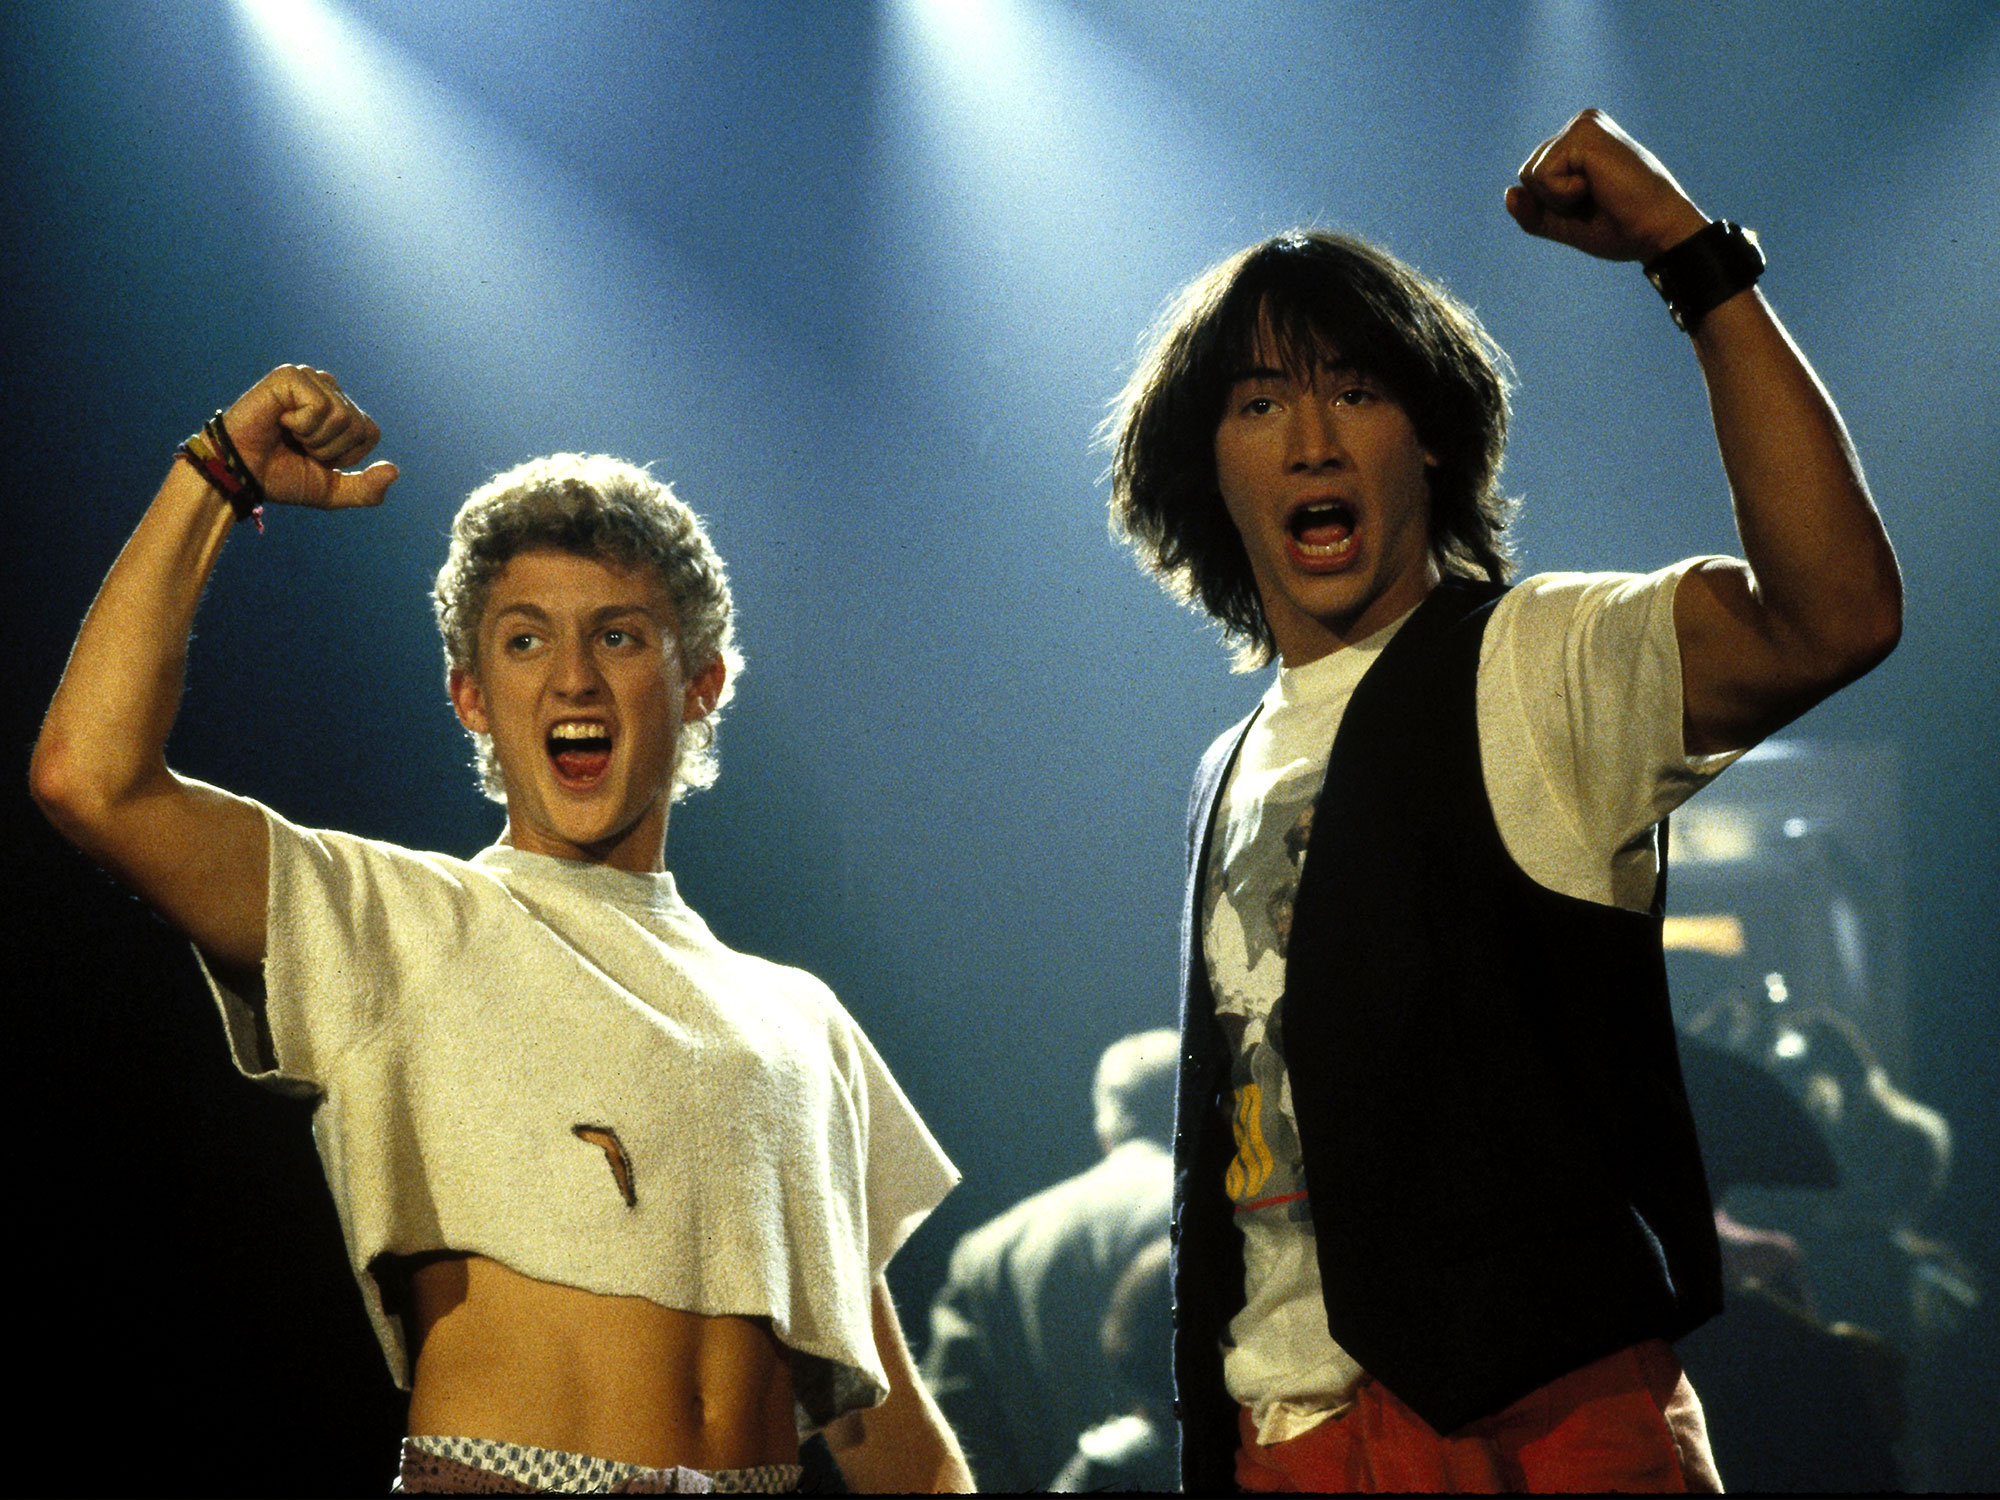 A Keanu Reeves film festival promises a most excellent adventure